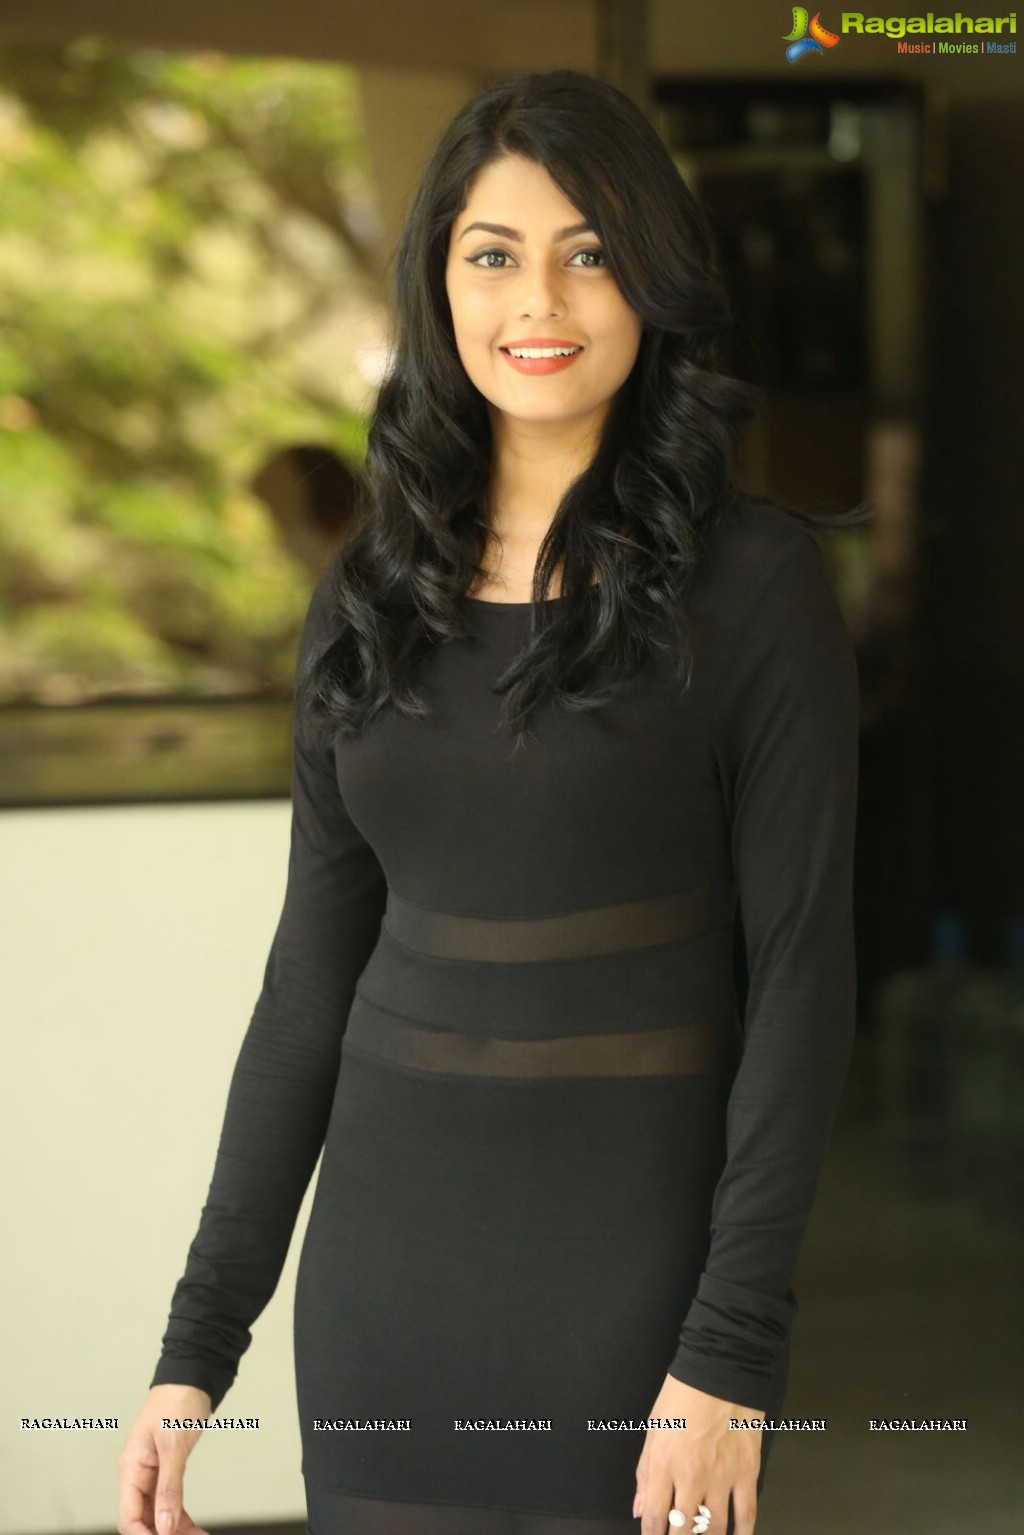 secunderabad single girls Women in secunderabad find free secunderabad personals at mateforallcom's secunderabad dating servicetired with other women services try speed dating online with mateforallcom's matchmaking service.